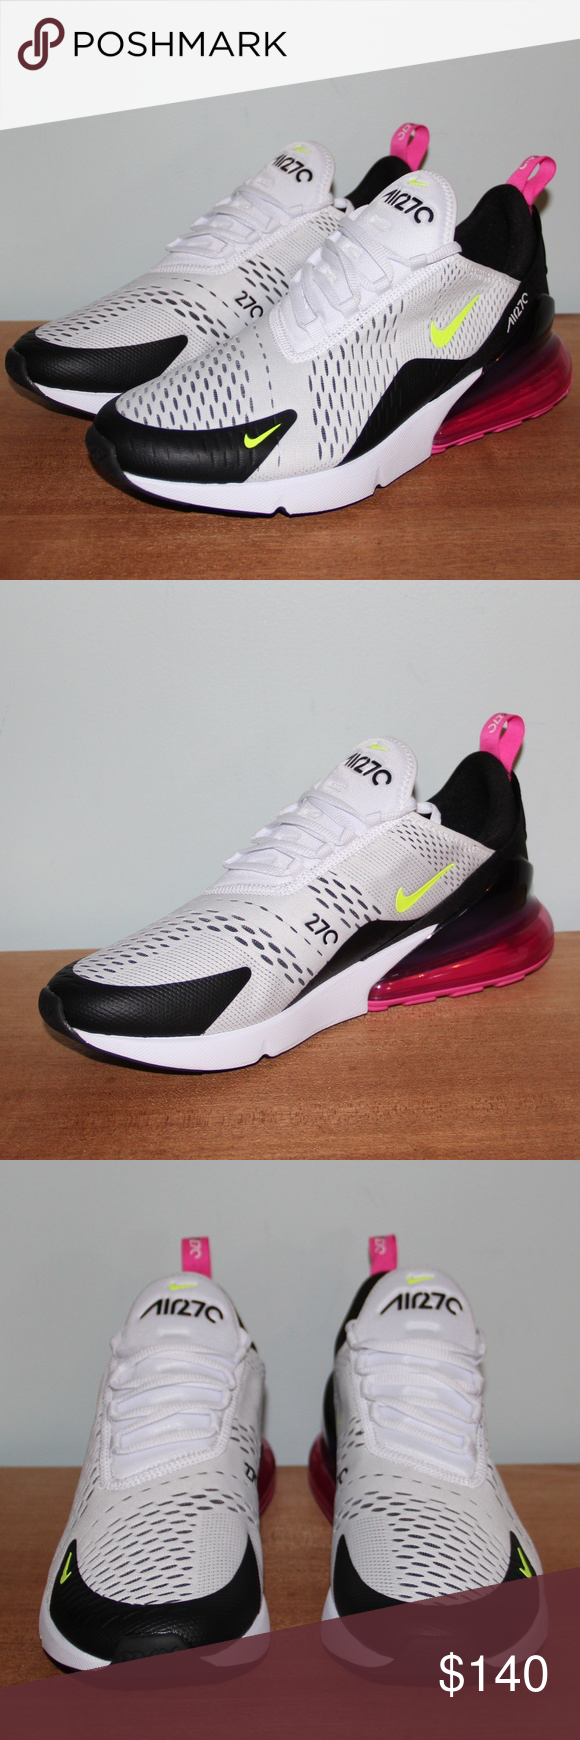 NEW Nike Air Max 270 Volt Fuschia Men's 10.5 New without box